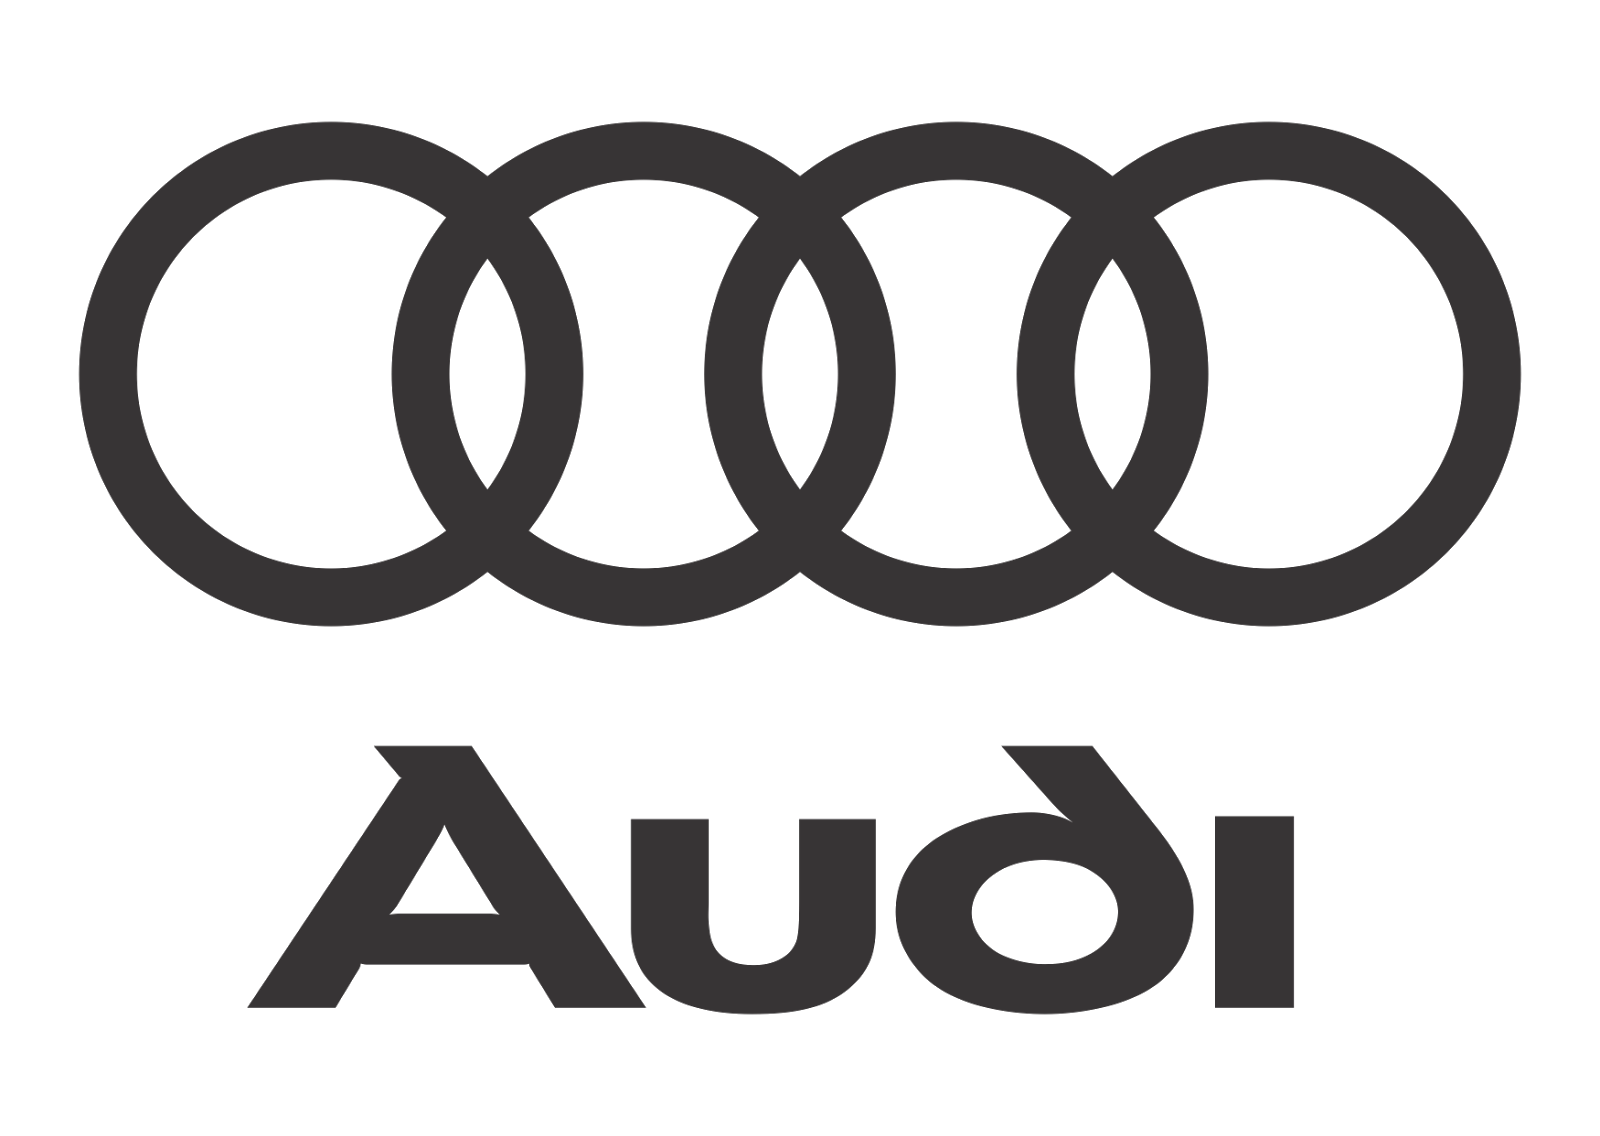 vector library Audi logo black white. Vector emblem style